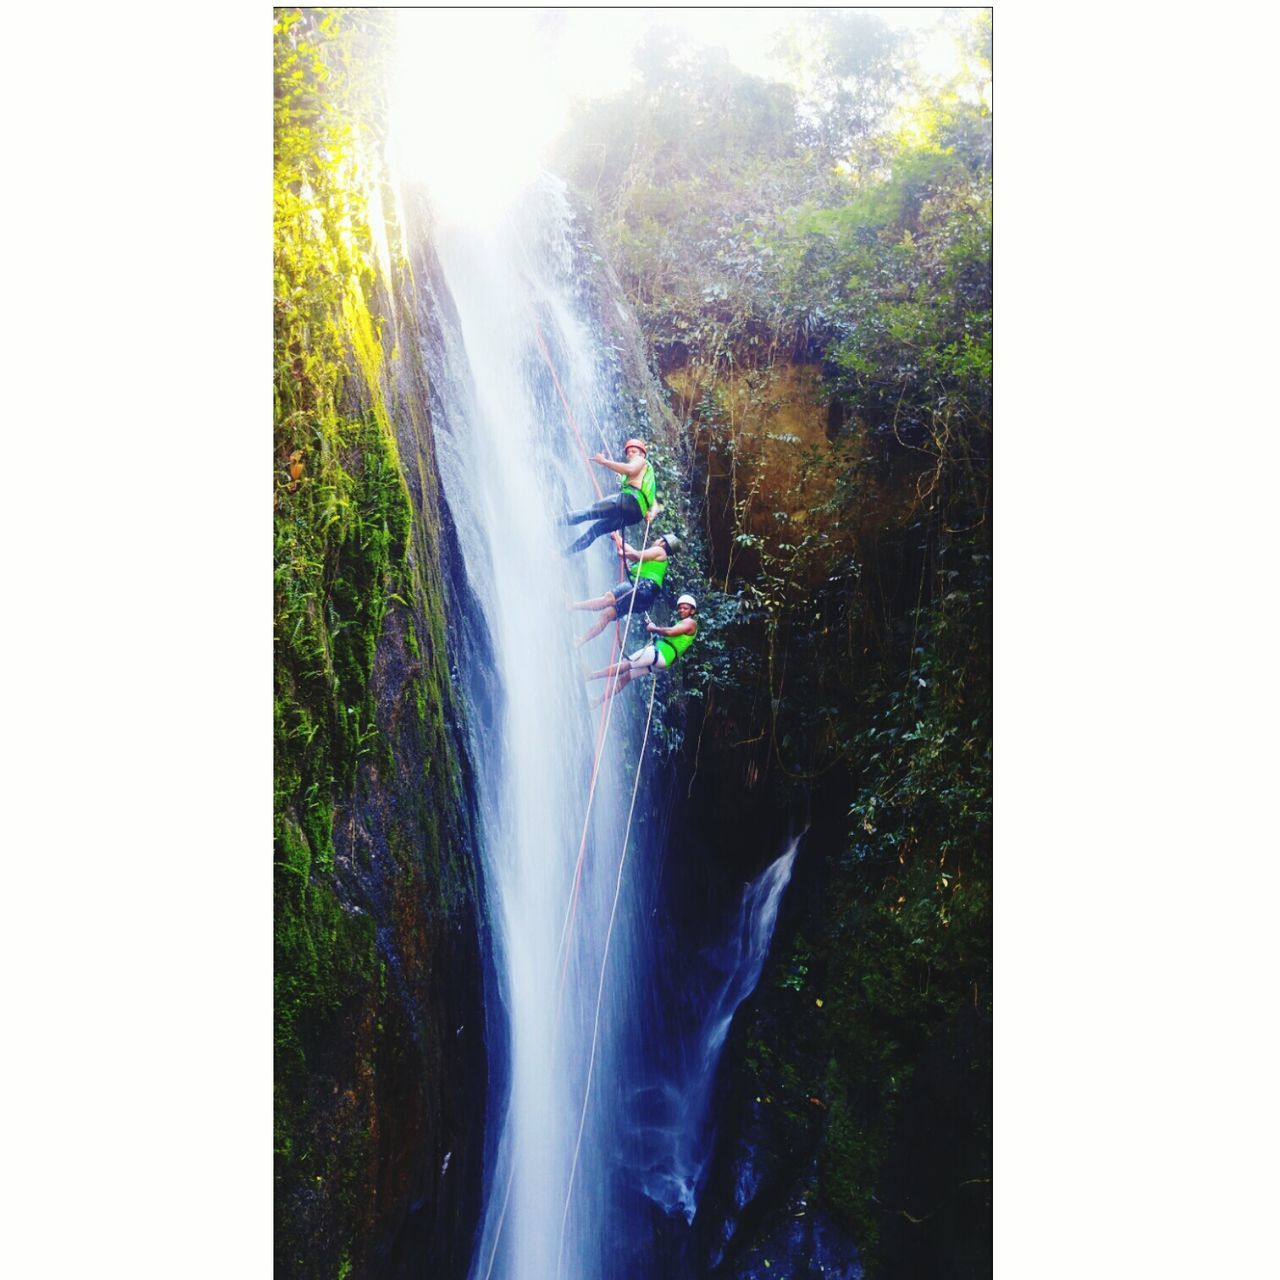 waterfall, forest, day, outdoors, motion, nature, water, scenics, beauty in nature, tree, travel, vacations, travel destinations, clear sky, no people, spraying, mountain, sky